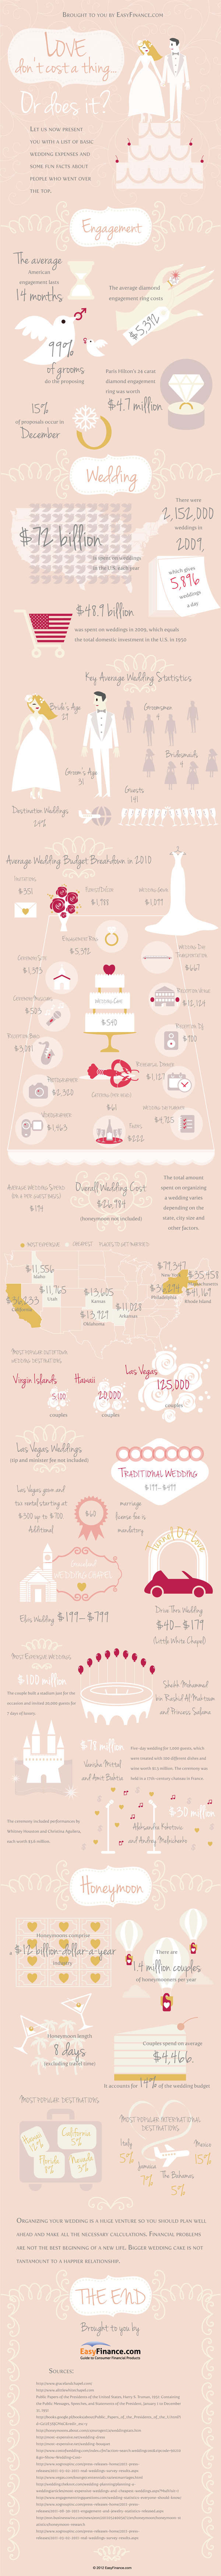 Love Don't Cost a Thing... or Does It? Crazy facts about weddings from theexcitedbride.com